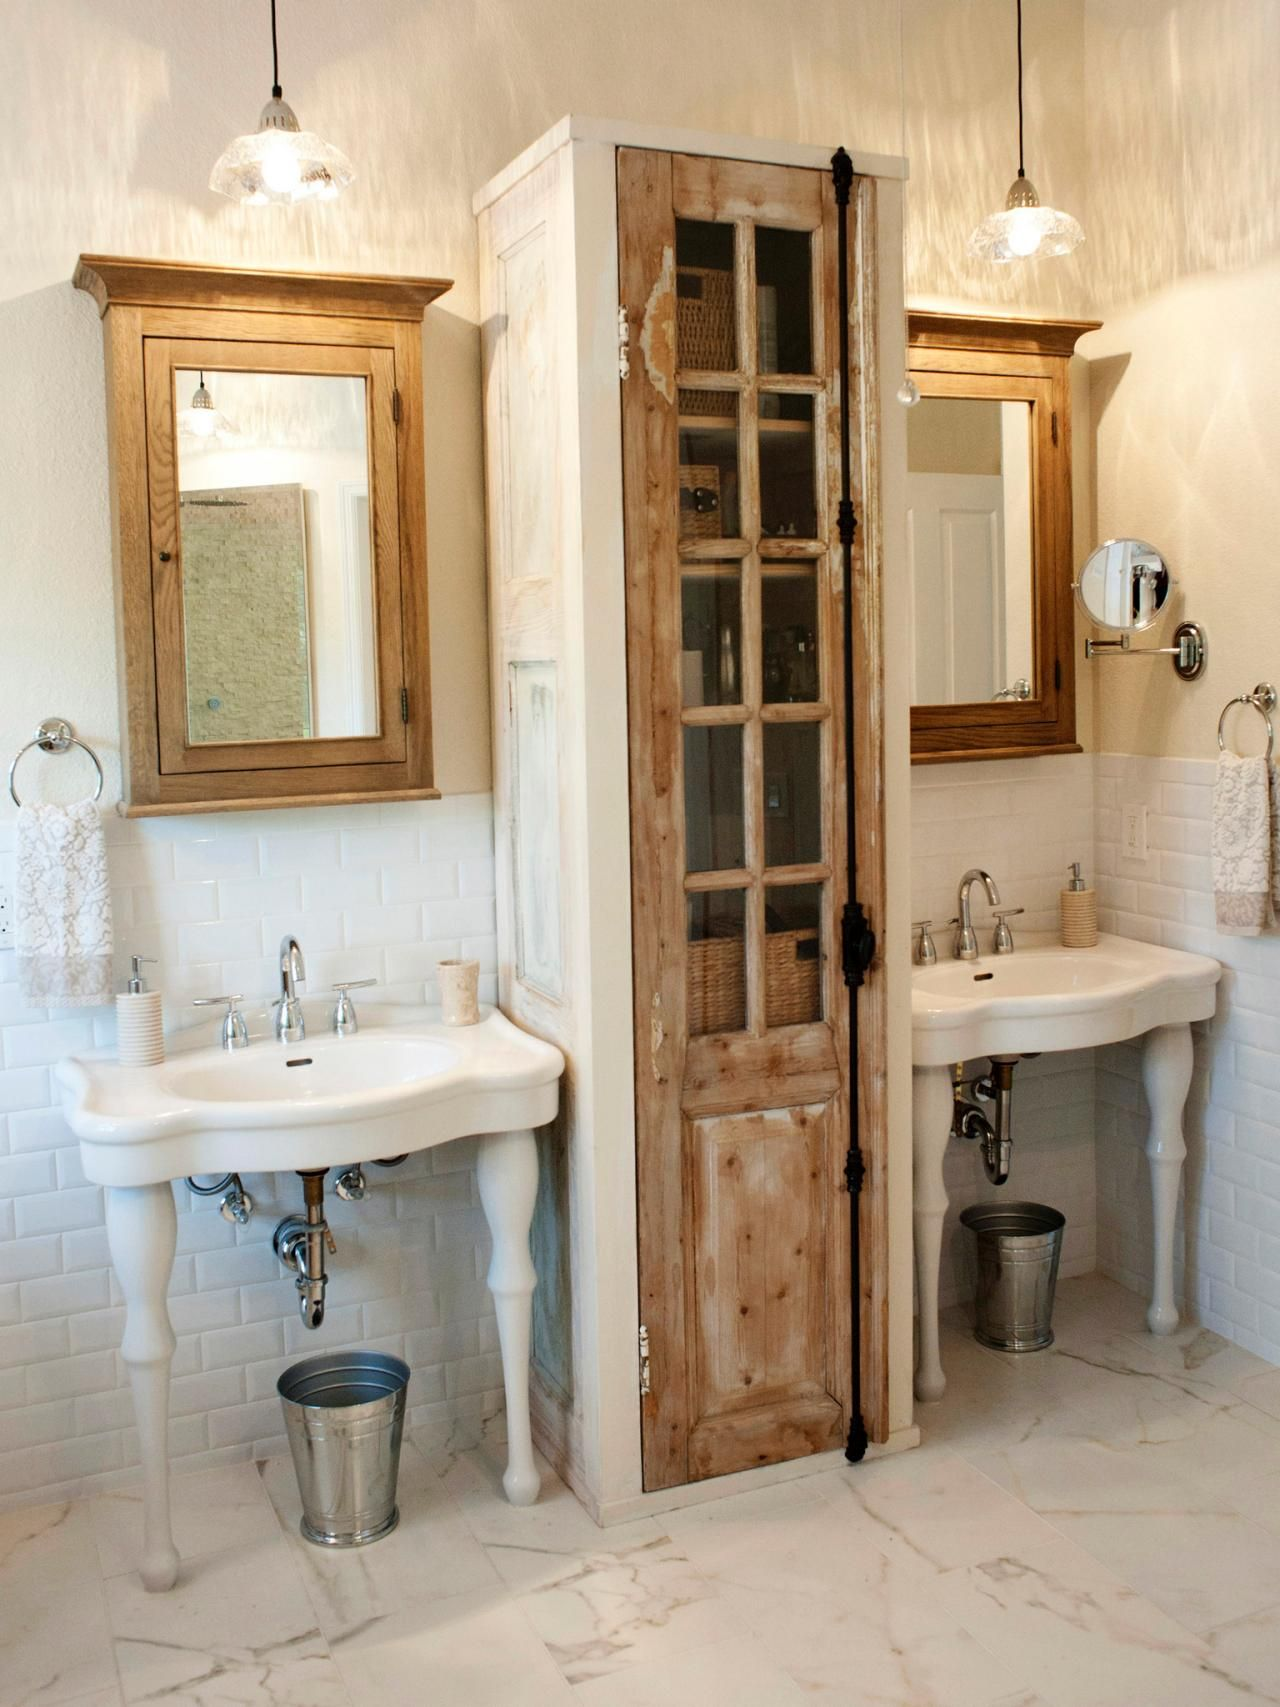 Creative Bathroom Storage Ideas Bathroom storage, Small